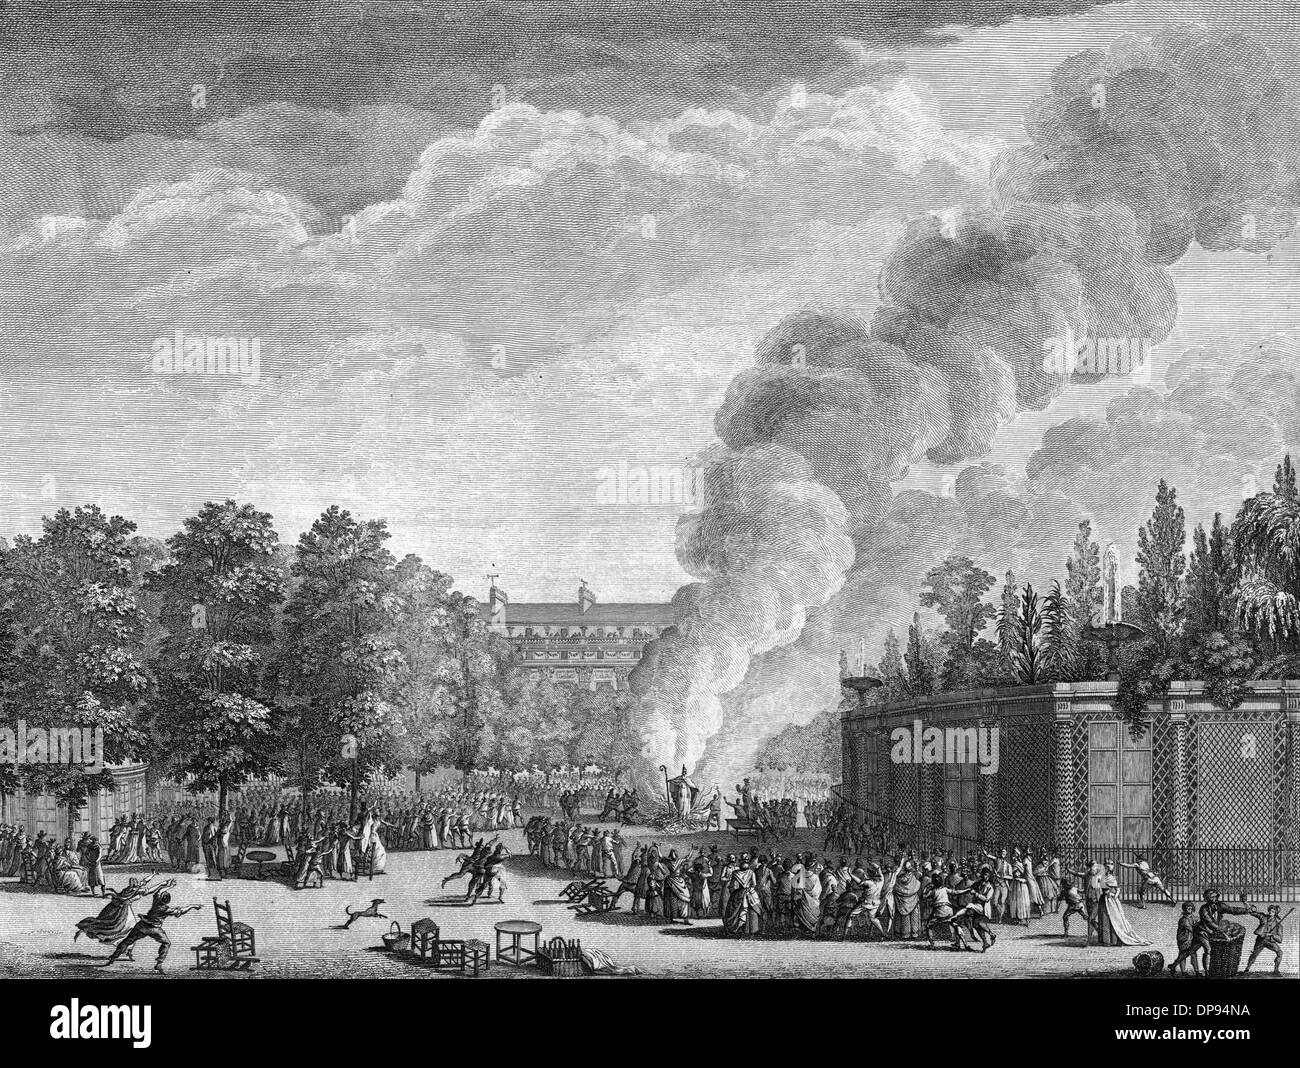 Burning an effigy of the Pope, French Revolution - Stock Image